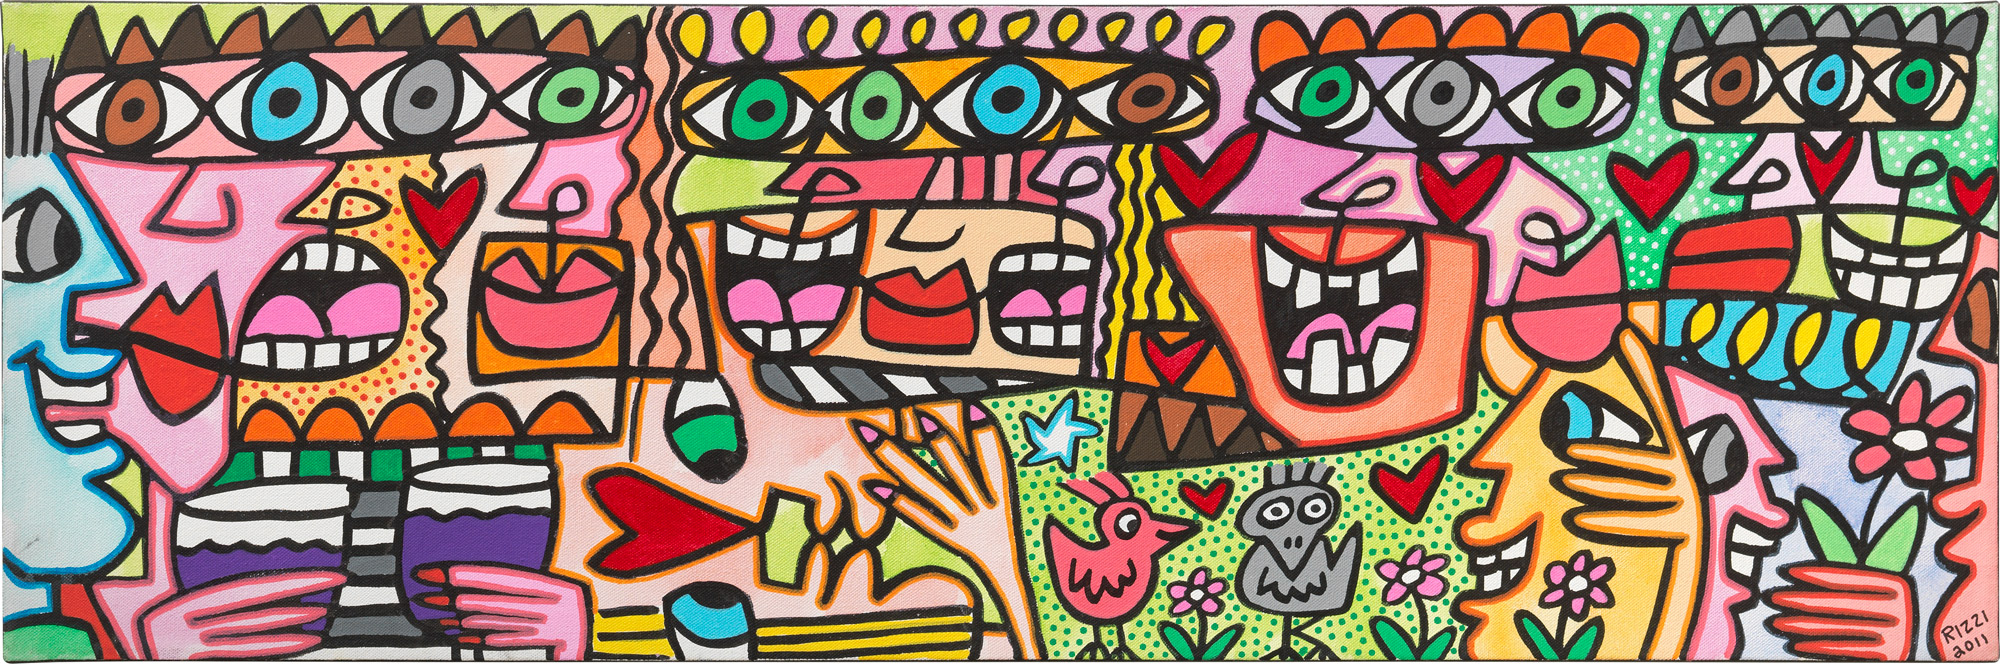 """Bild """"Let's all have a jolly good time"""" (2011) (Unikat)"""